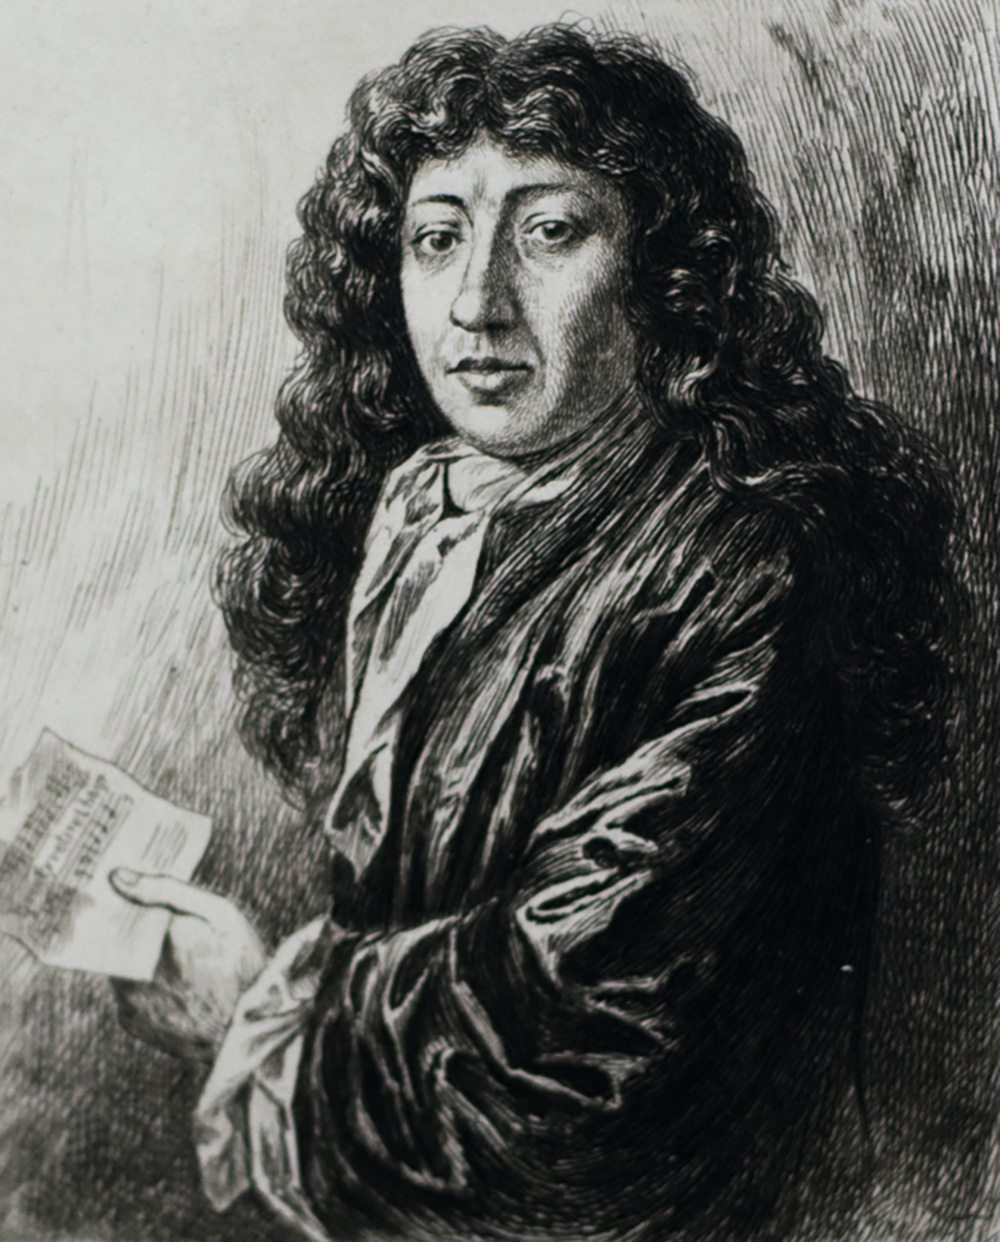 The Diary of Samuel Pepys.